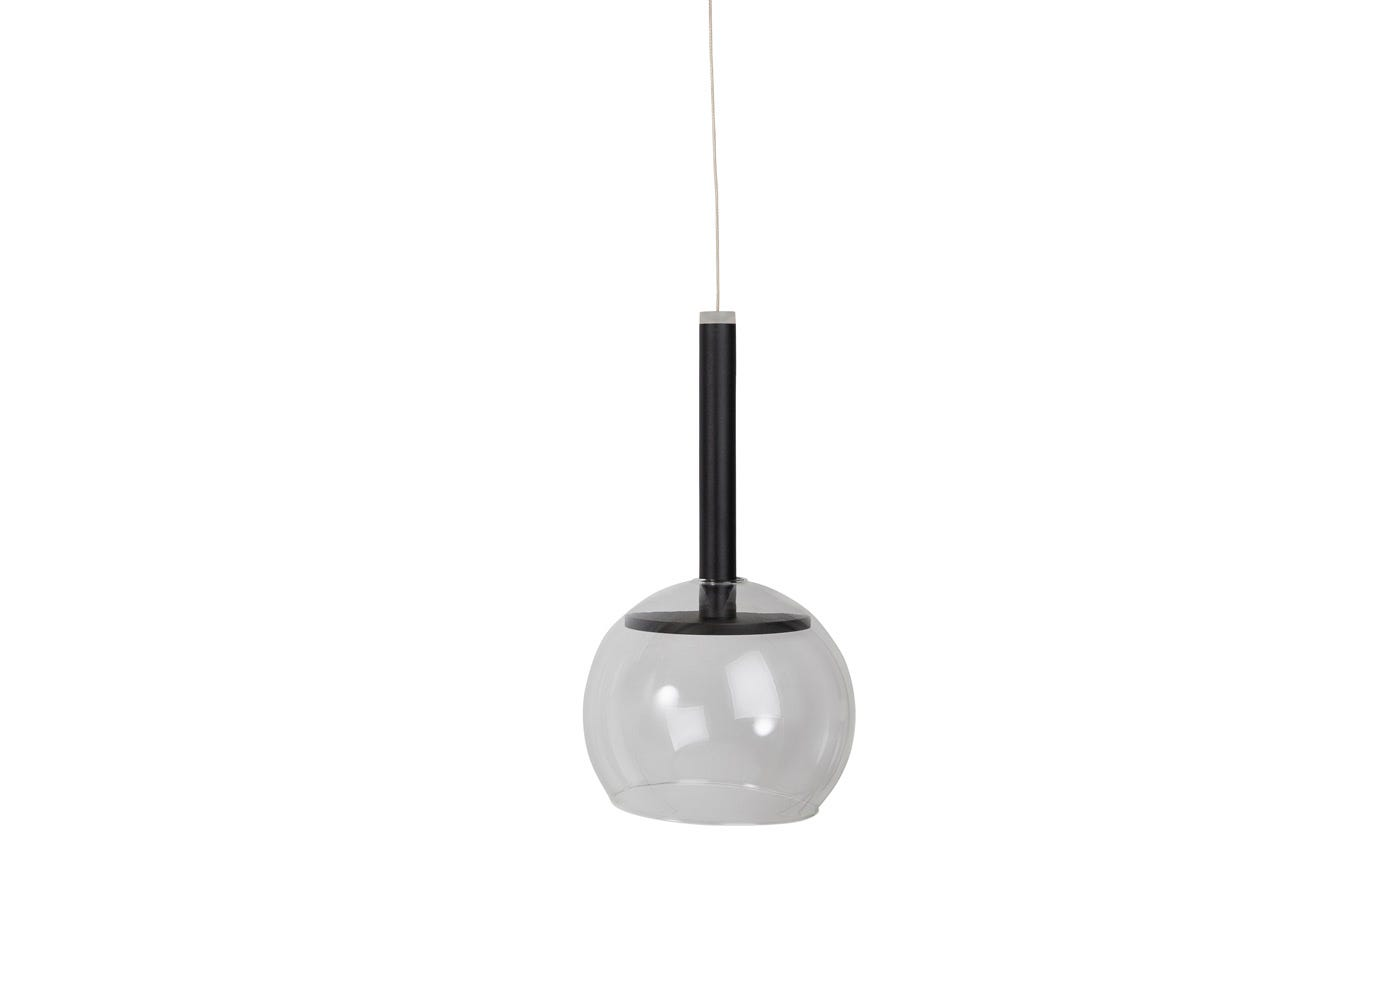 Clear glass shade with disc long LED pendant in black off (please note the pendant is sold separately).